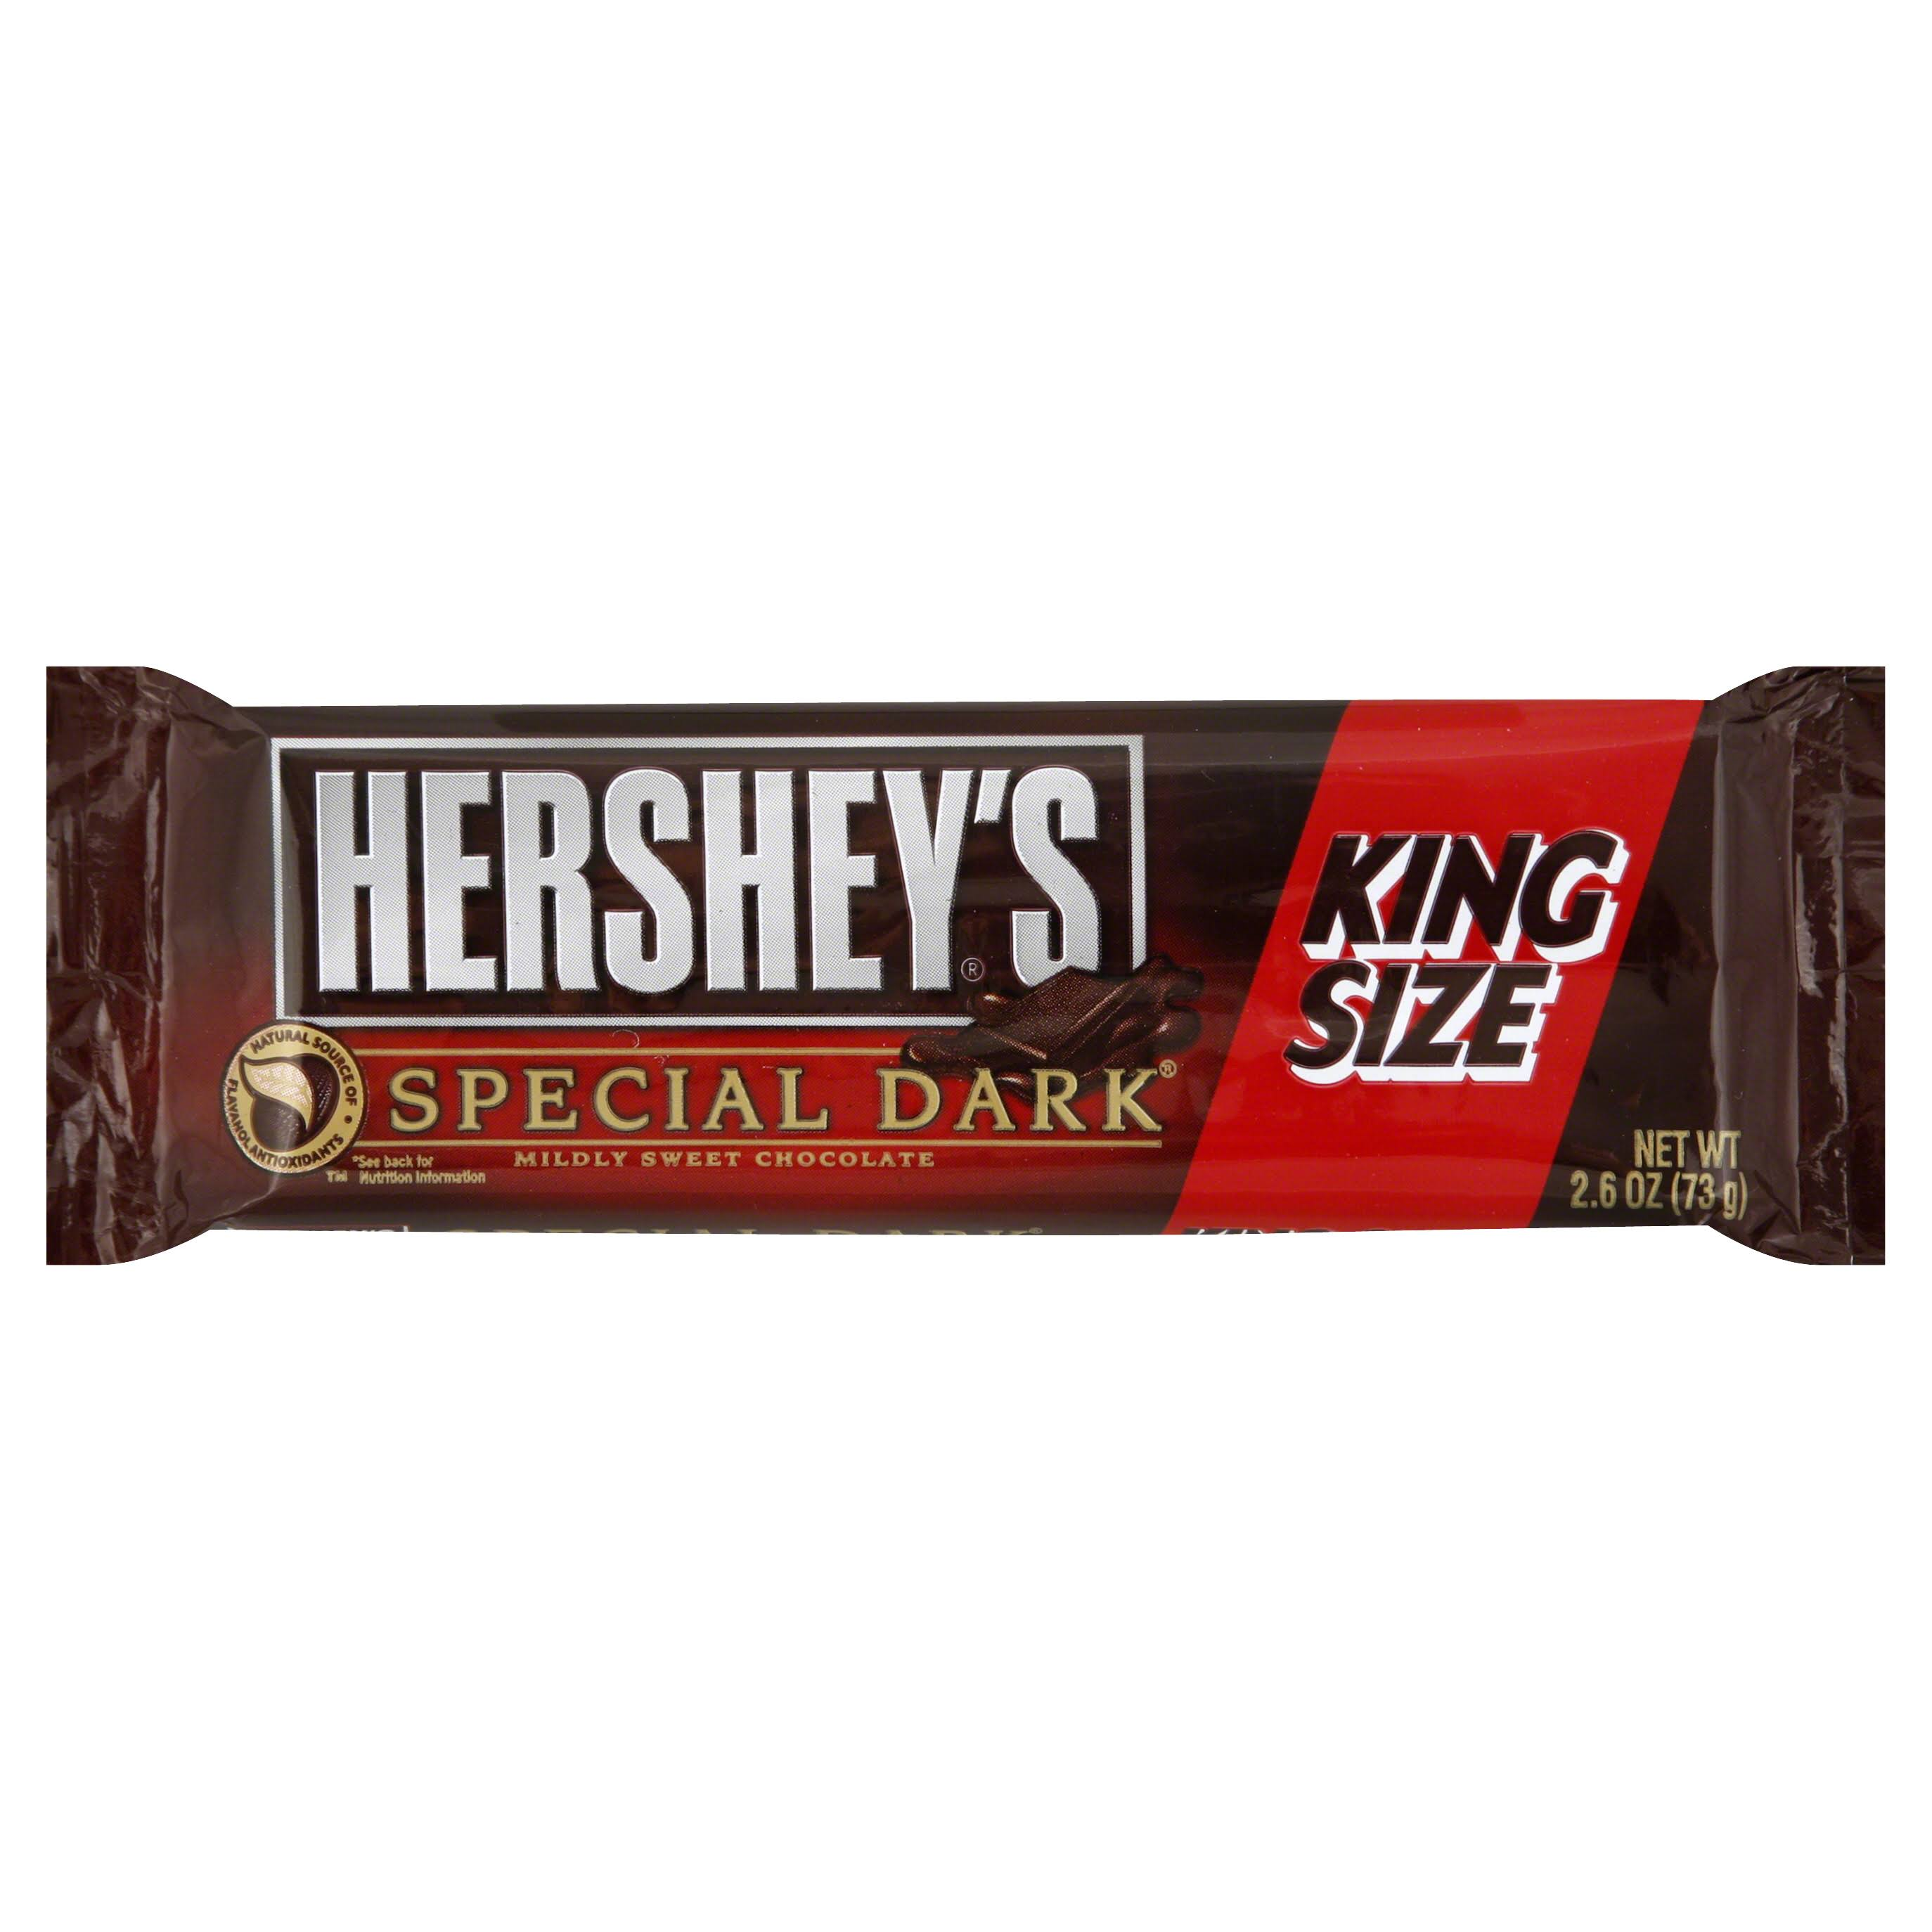 Hersheys Special Dark Chocolate Bars, King Size - 2.6 oz